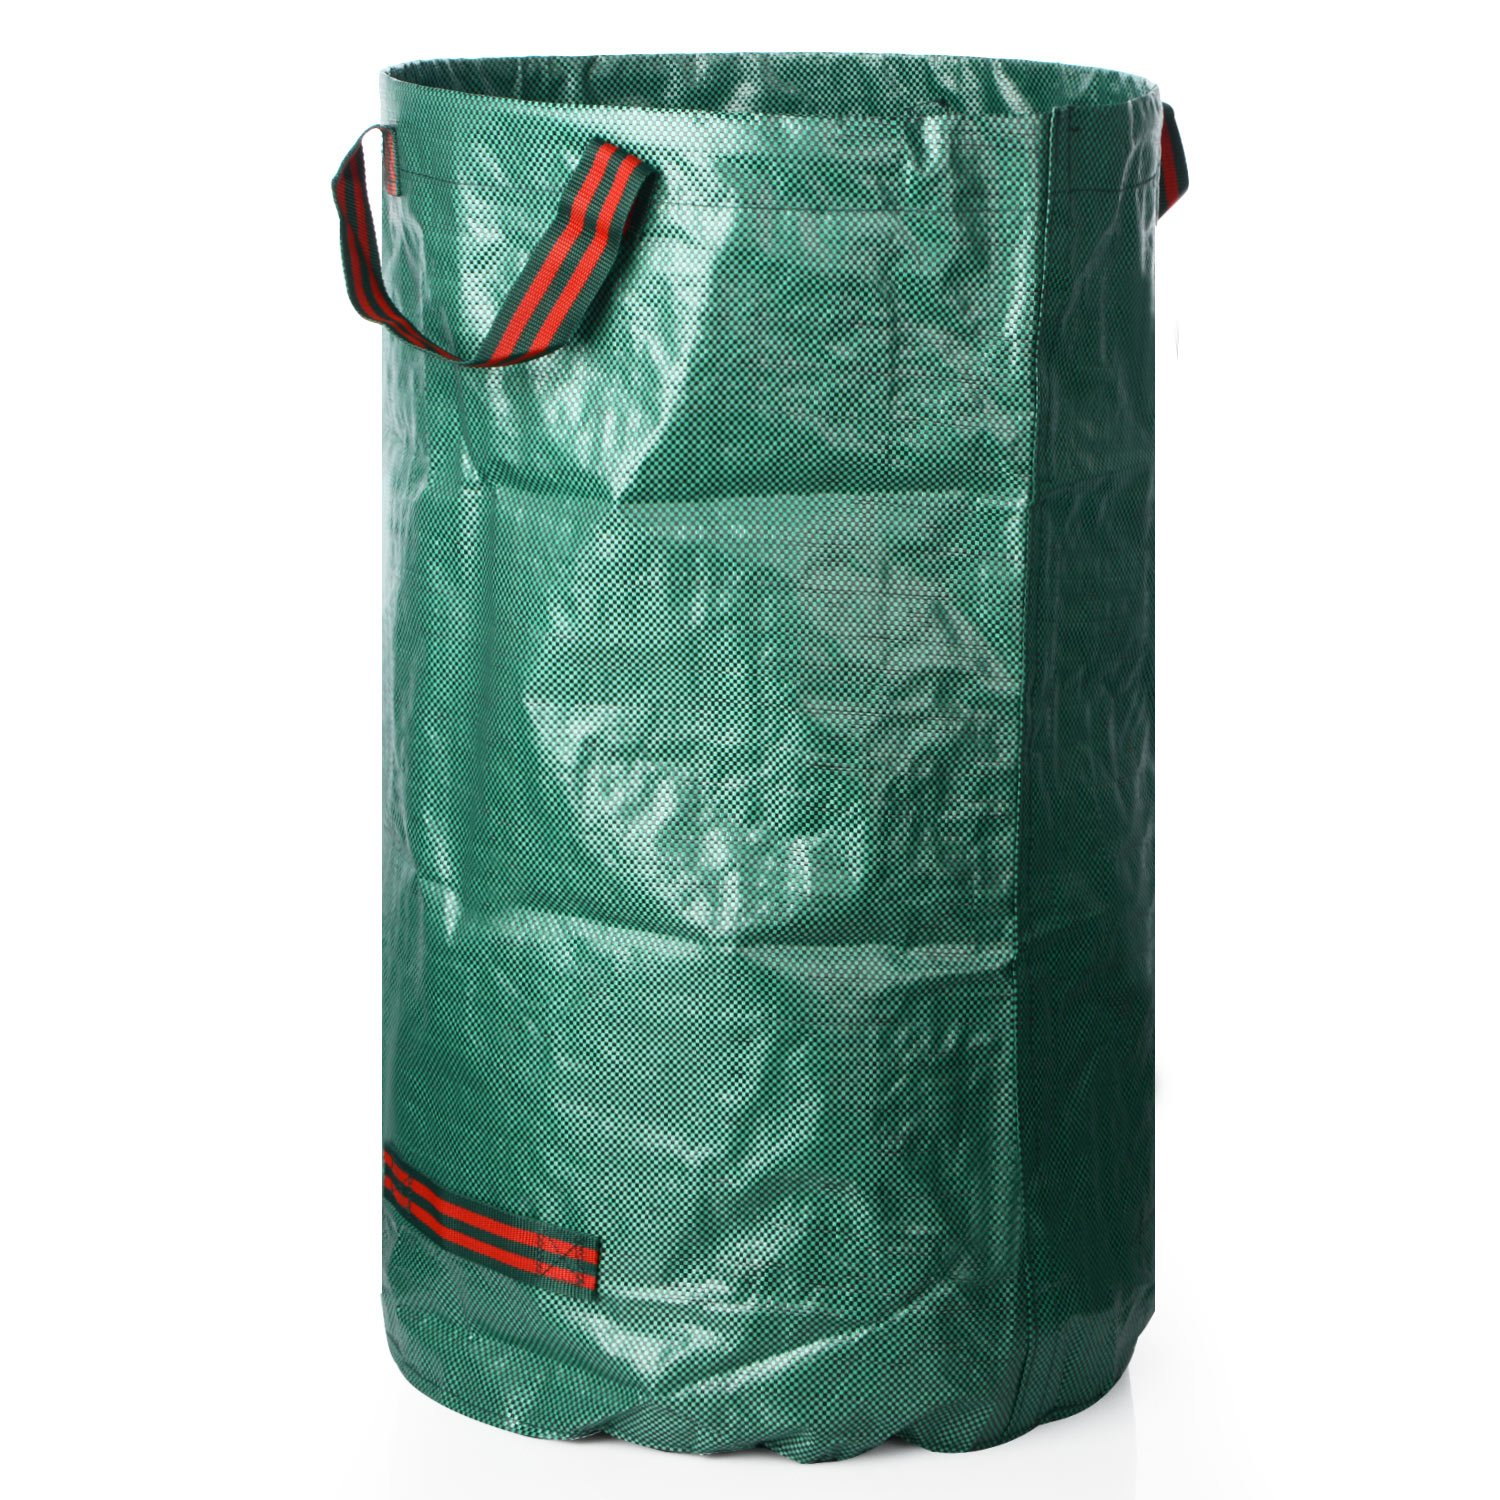 72Gallons Garden Bags, Gallon Reusable Garden Bags, Yard Leaf Lawn Grass Waste Trash Container - Heavy Duty Collapsible Basket with Portable Handles